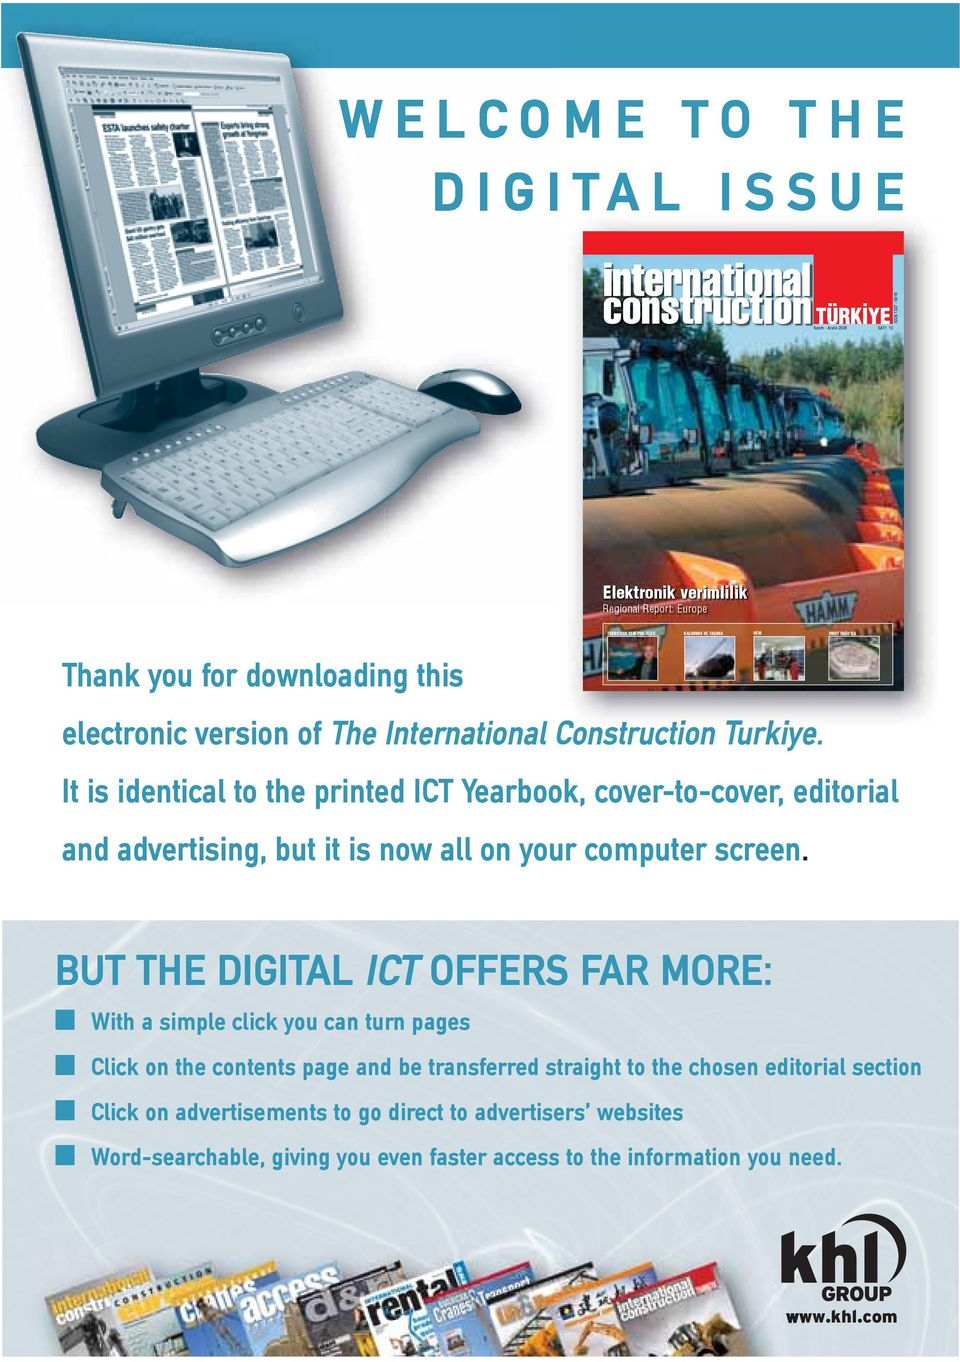 It is identical to the printed ICT Yearbook, cover-to-cover, editorial and advertising, but it is now all on your computer screen.